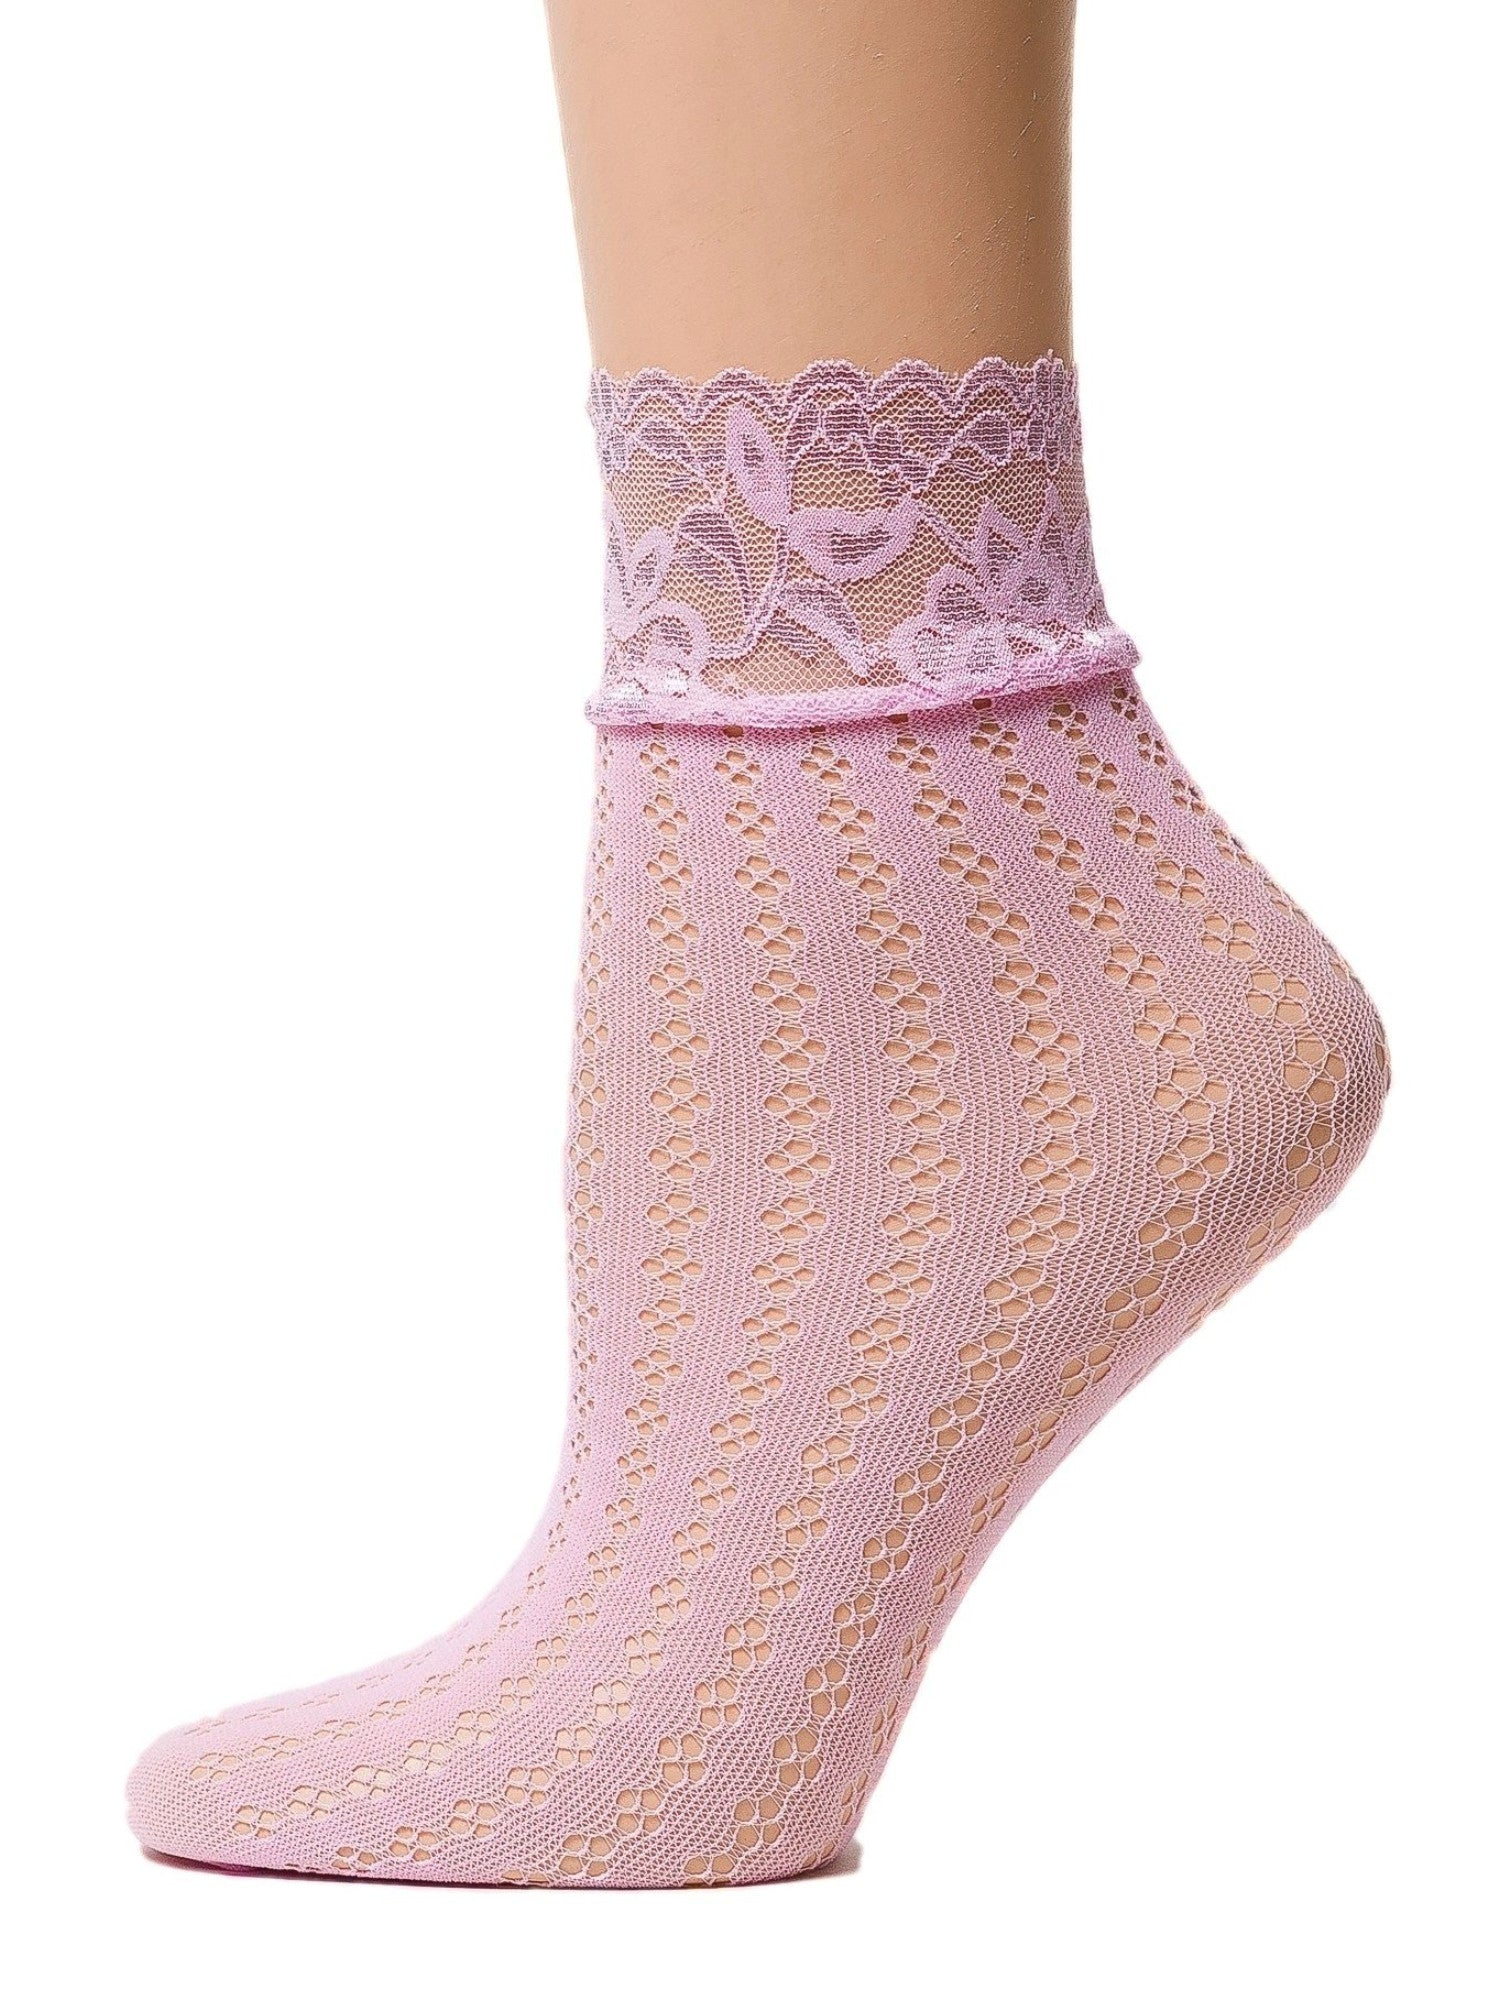 Mushy Pink Sheer Socks